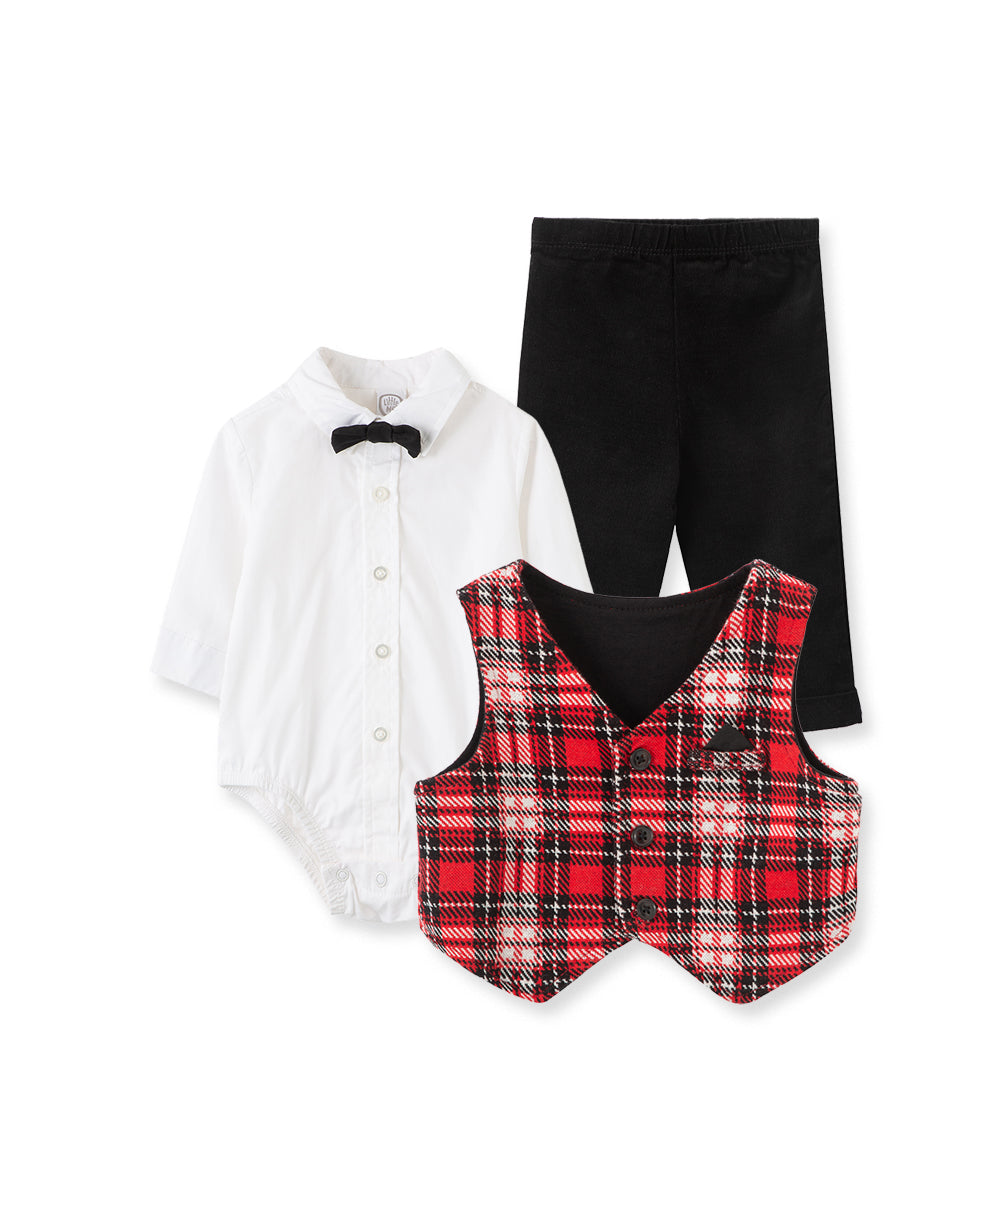 Festive Party Plaid Vest Set